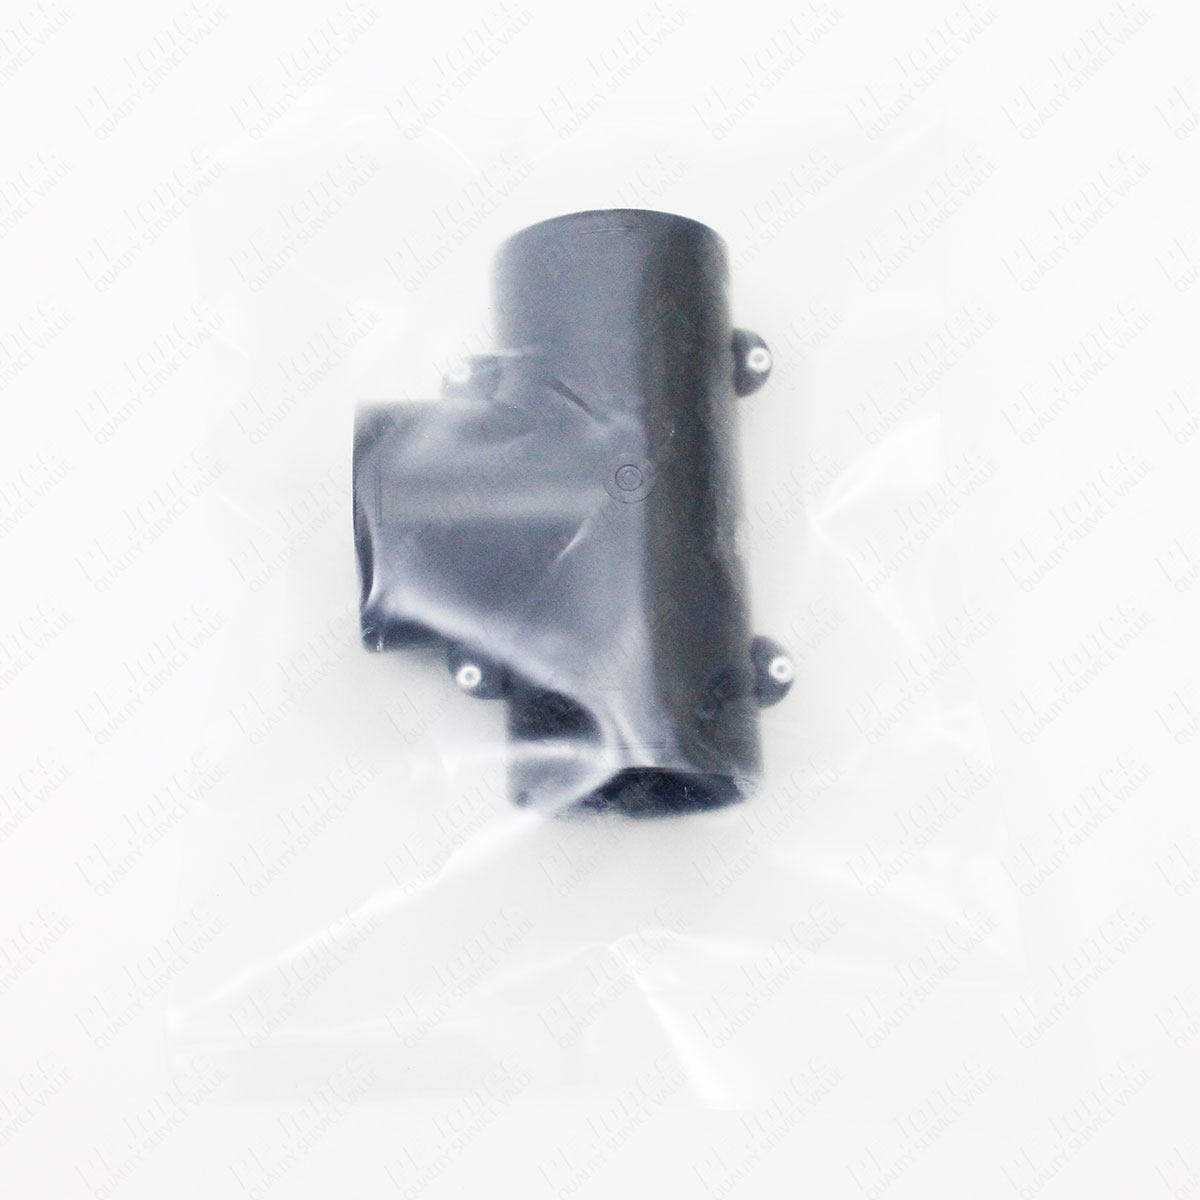 T-shape adapter for air pipe